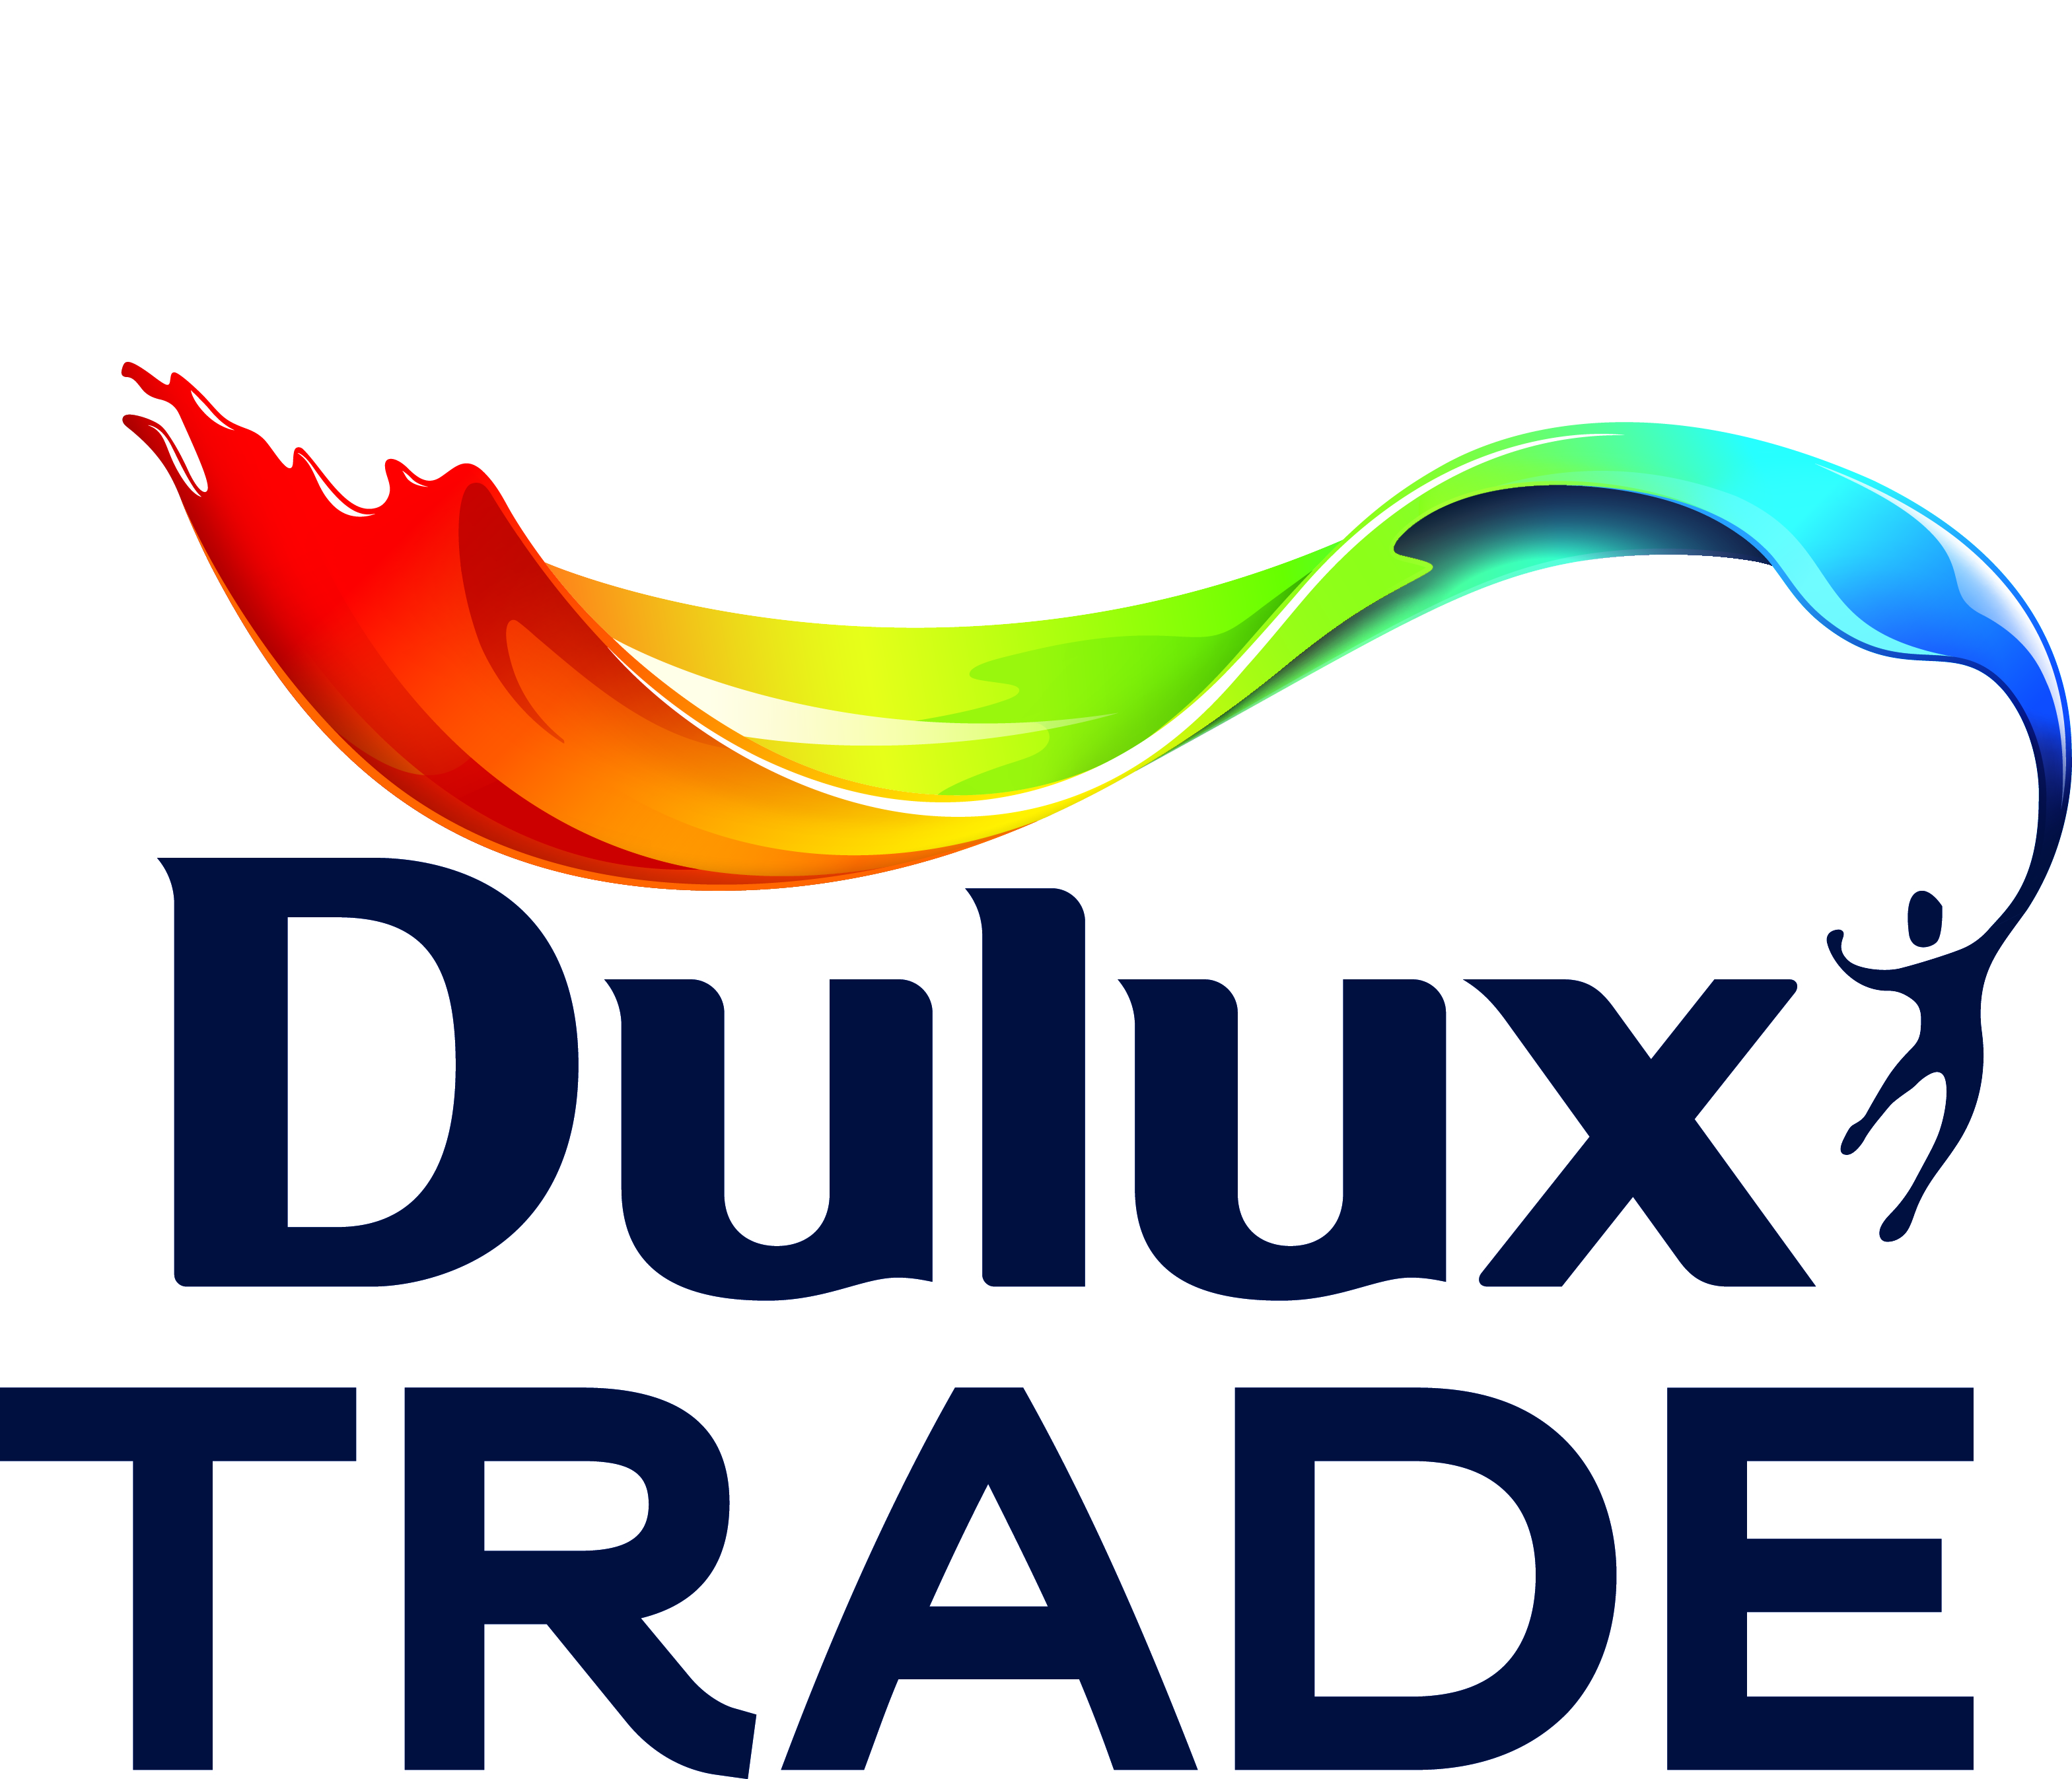 new dulux trade logo